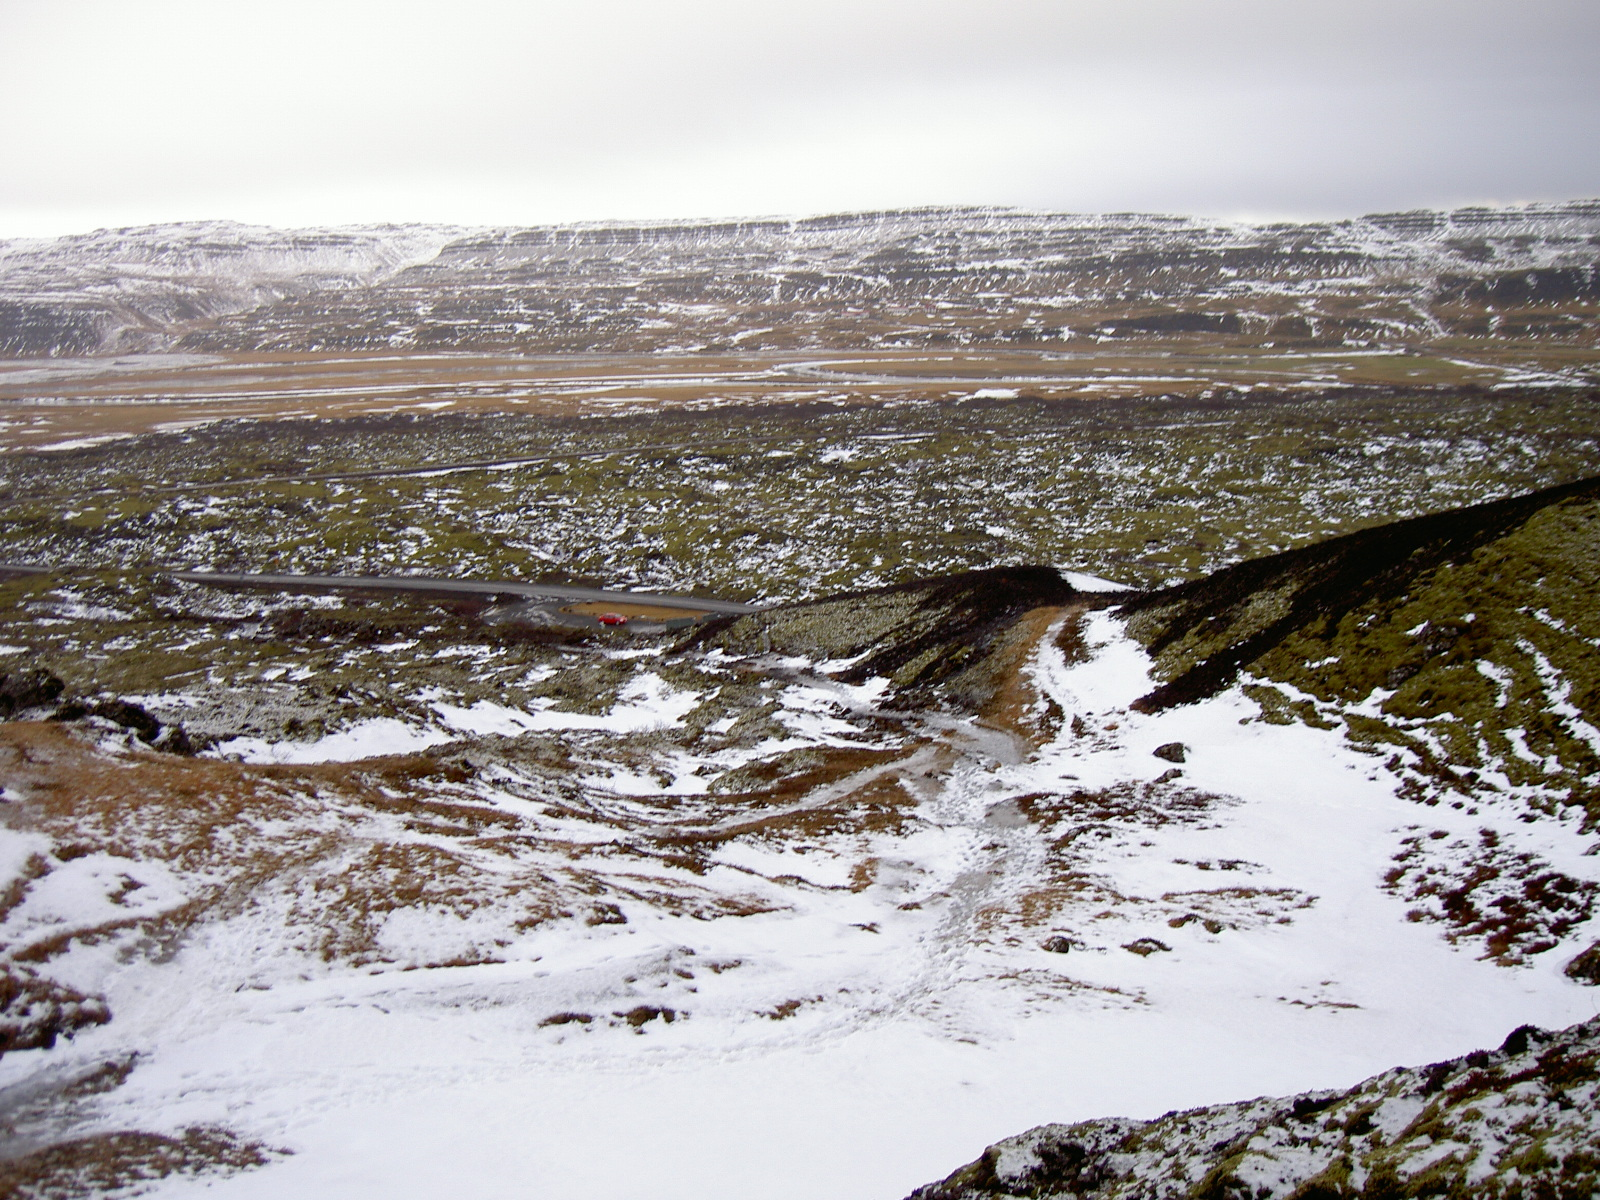 Climbing toward Grabrok crater (purpose of page is to display an image)